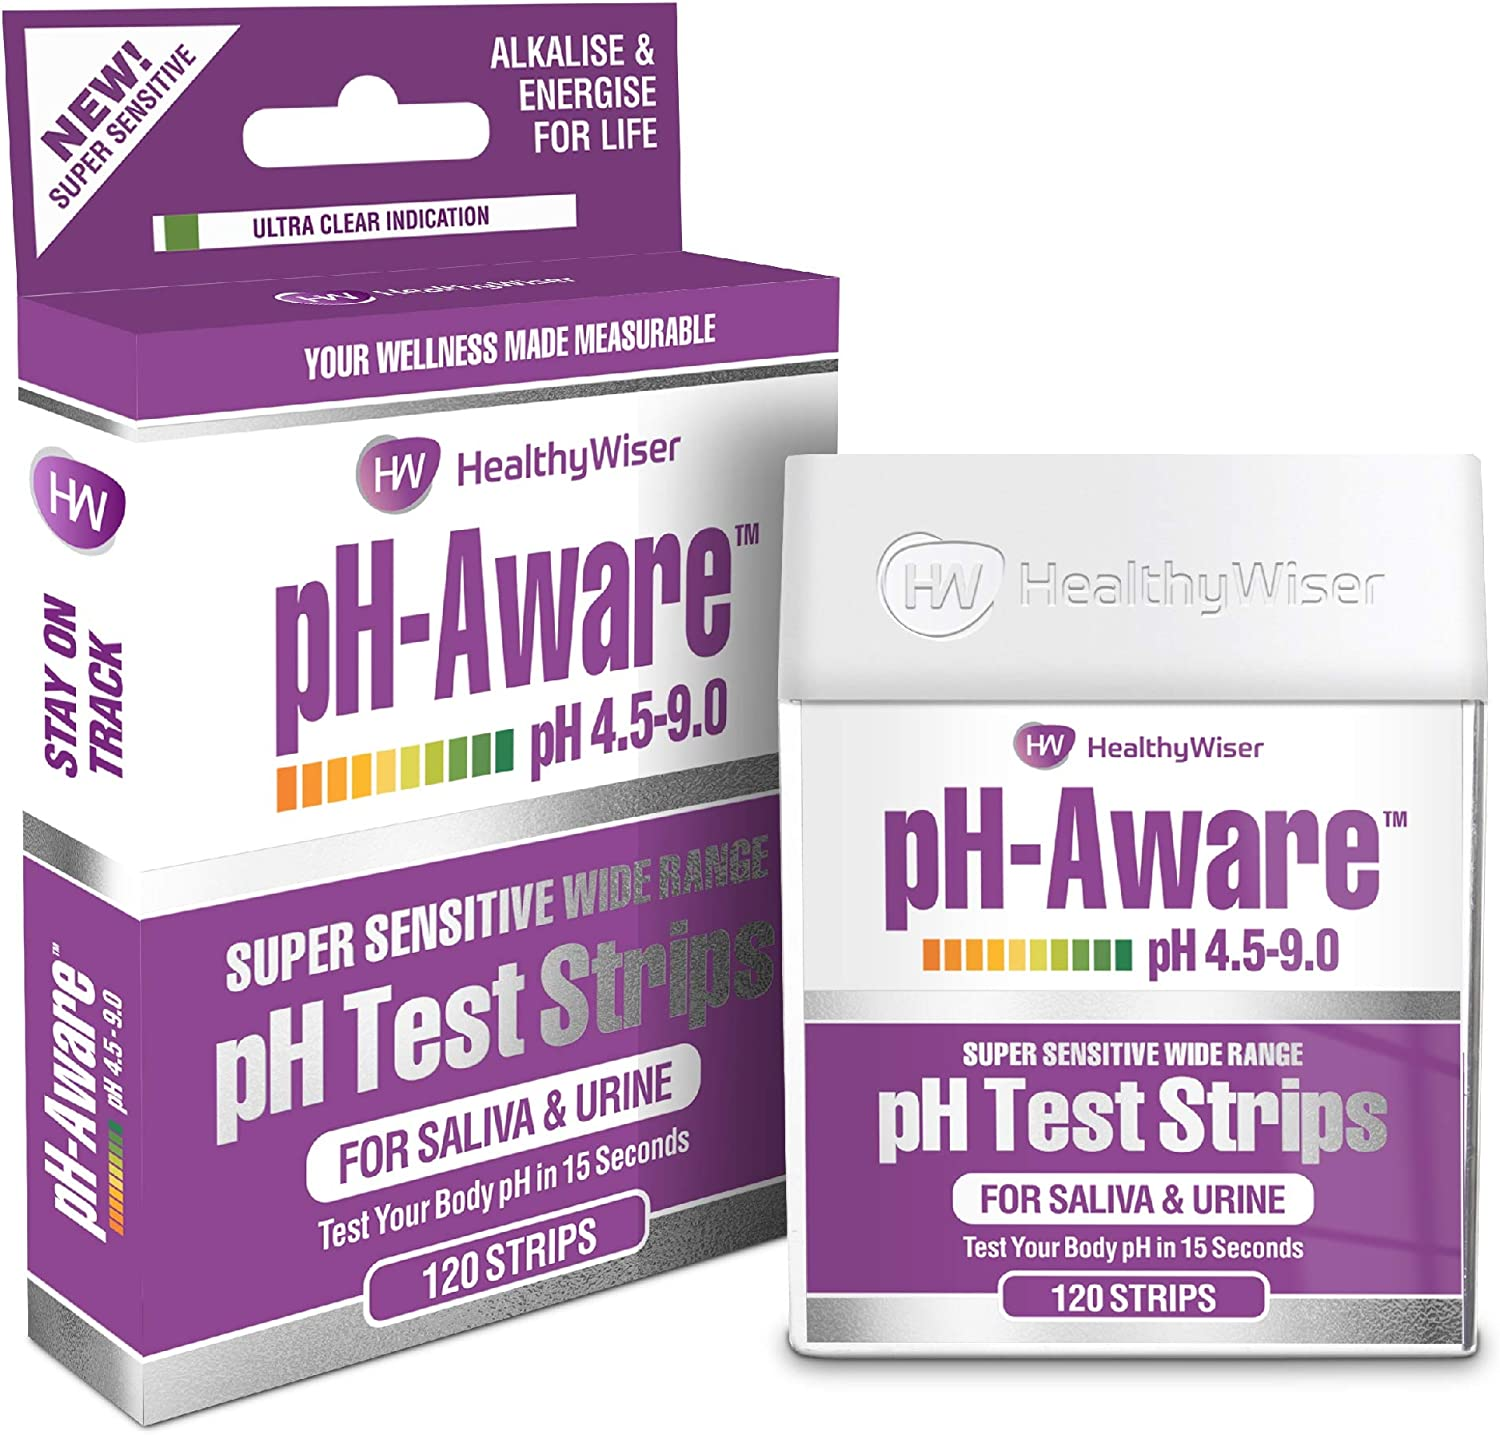 pH Test Strips 120ct - Tests Body pH Levels for Alkaline & Acid Levels Using Saliva & Urine. Track & Monitor Your pH Balance & A Healthy Diet, Get Accurate Results in s. pH Scale 4.5-9: Health & Personal Care